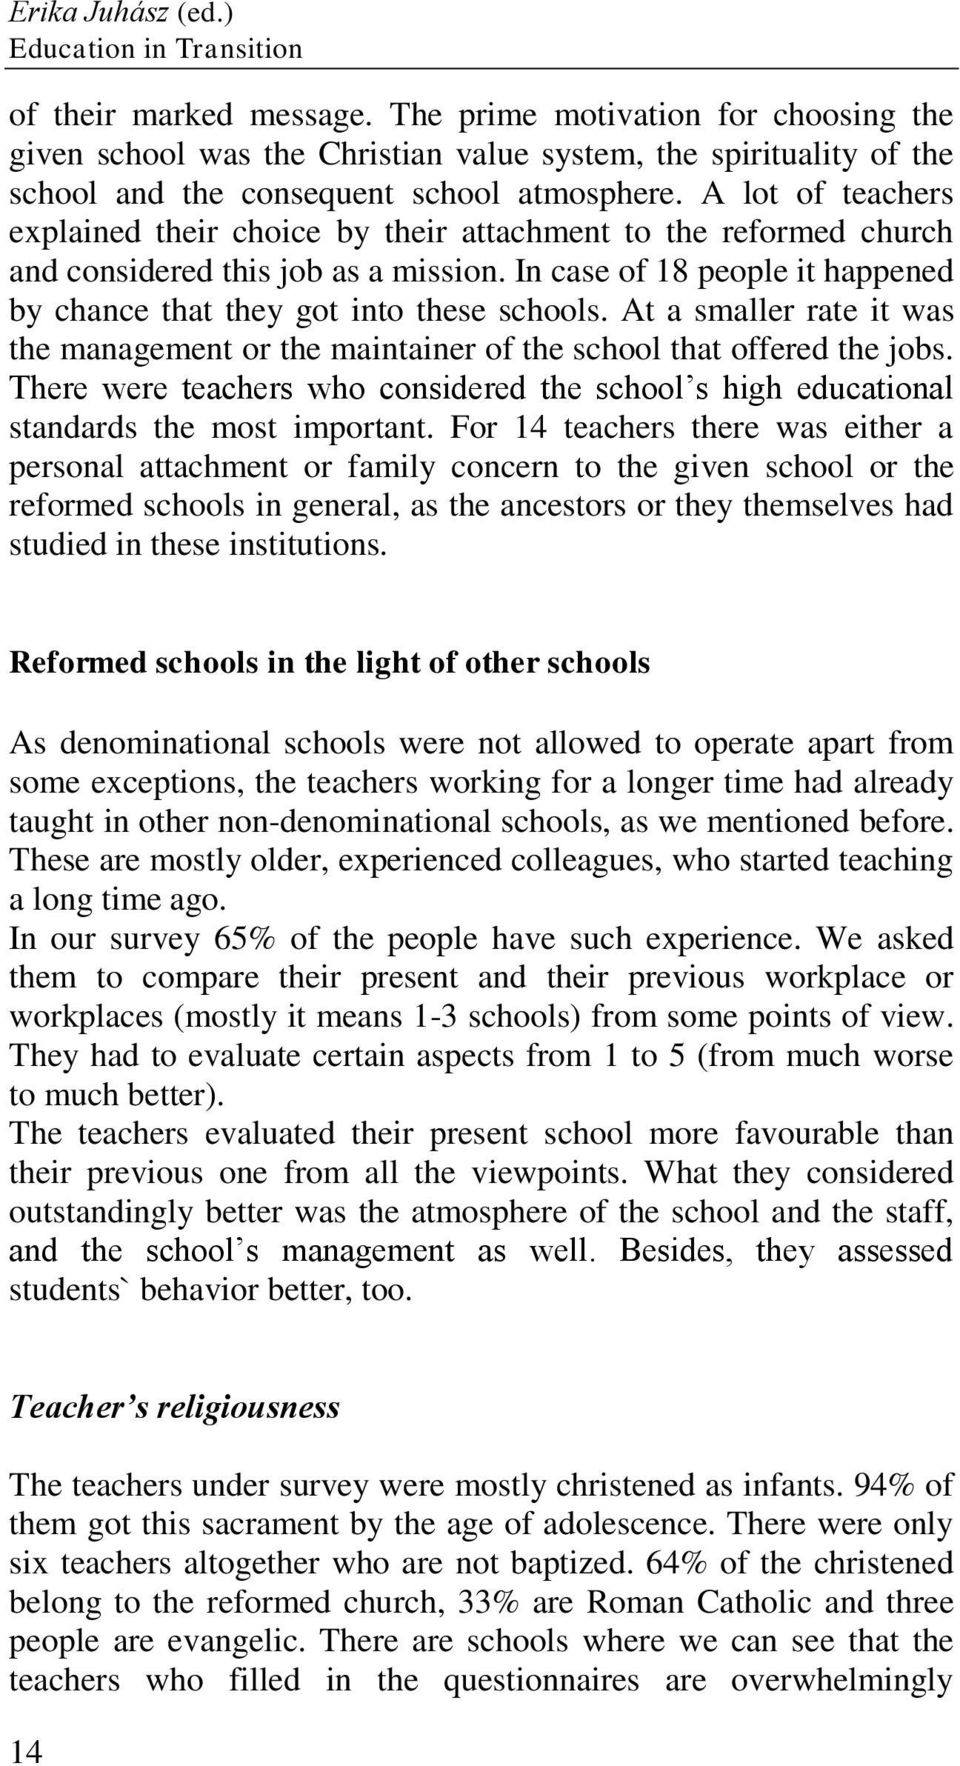 A lot of teachers explained their choice by their attachment to the reformed church and considered this job as a mission. In case of 18 people it happened by chance that they got into these schools.